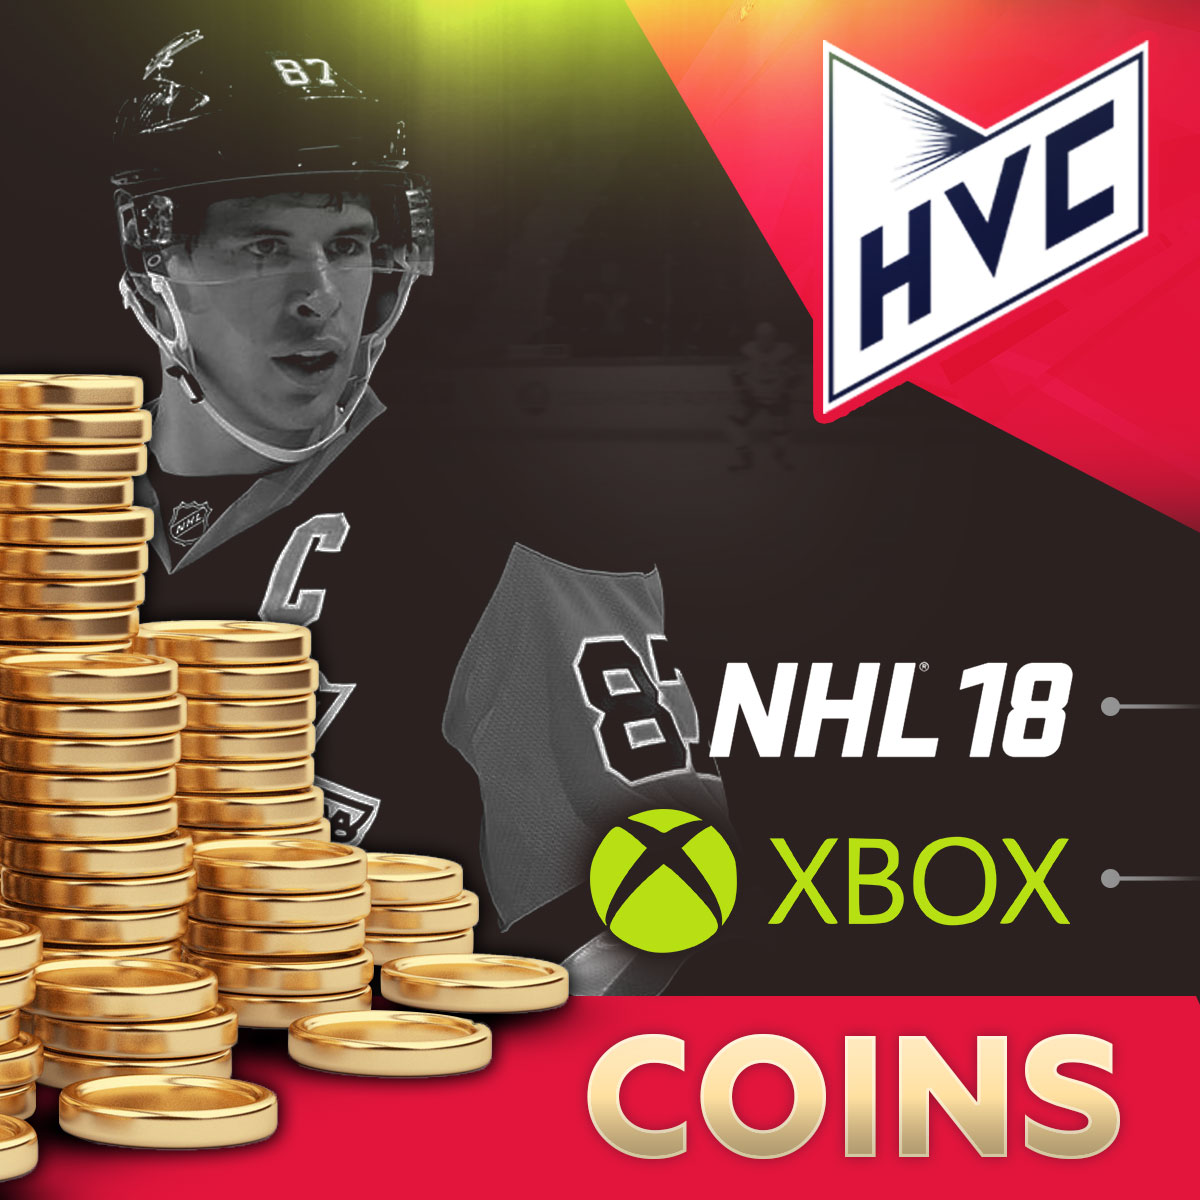 COINS NHL 18 XBOX  HUT Coins | Low Price | Fast | + 5%